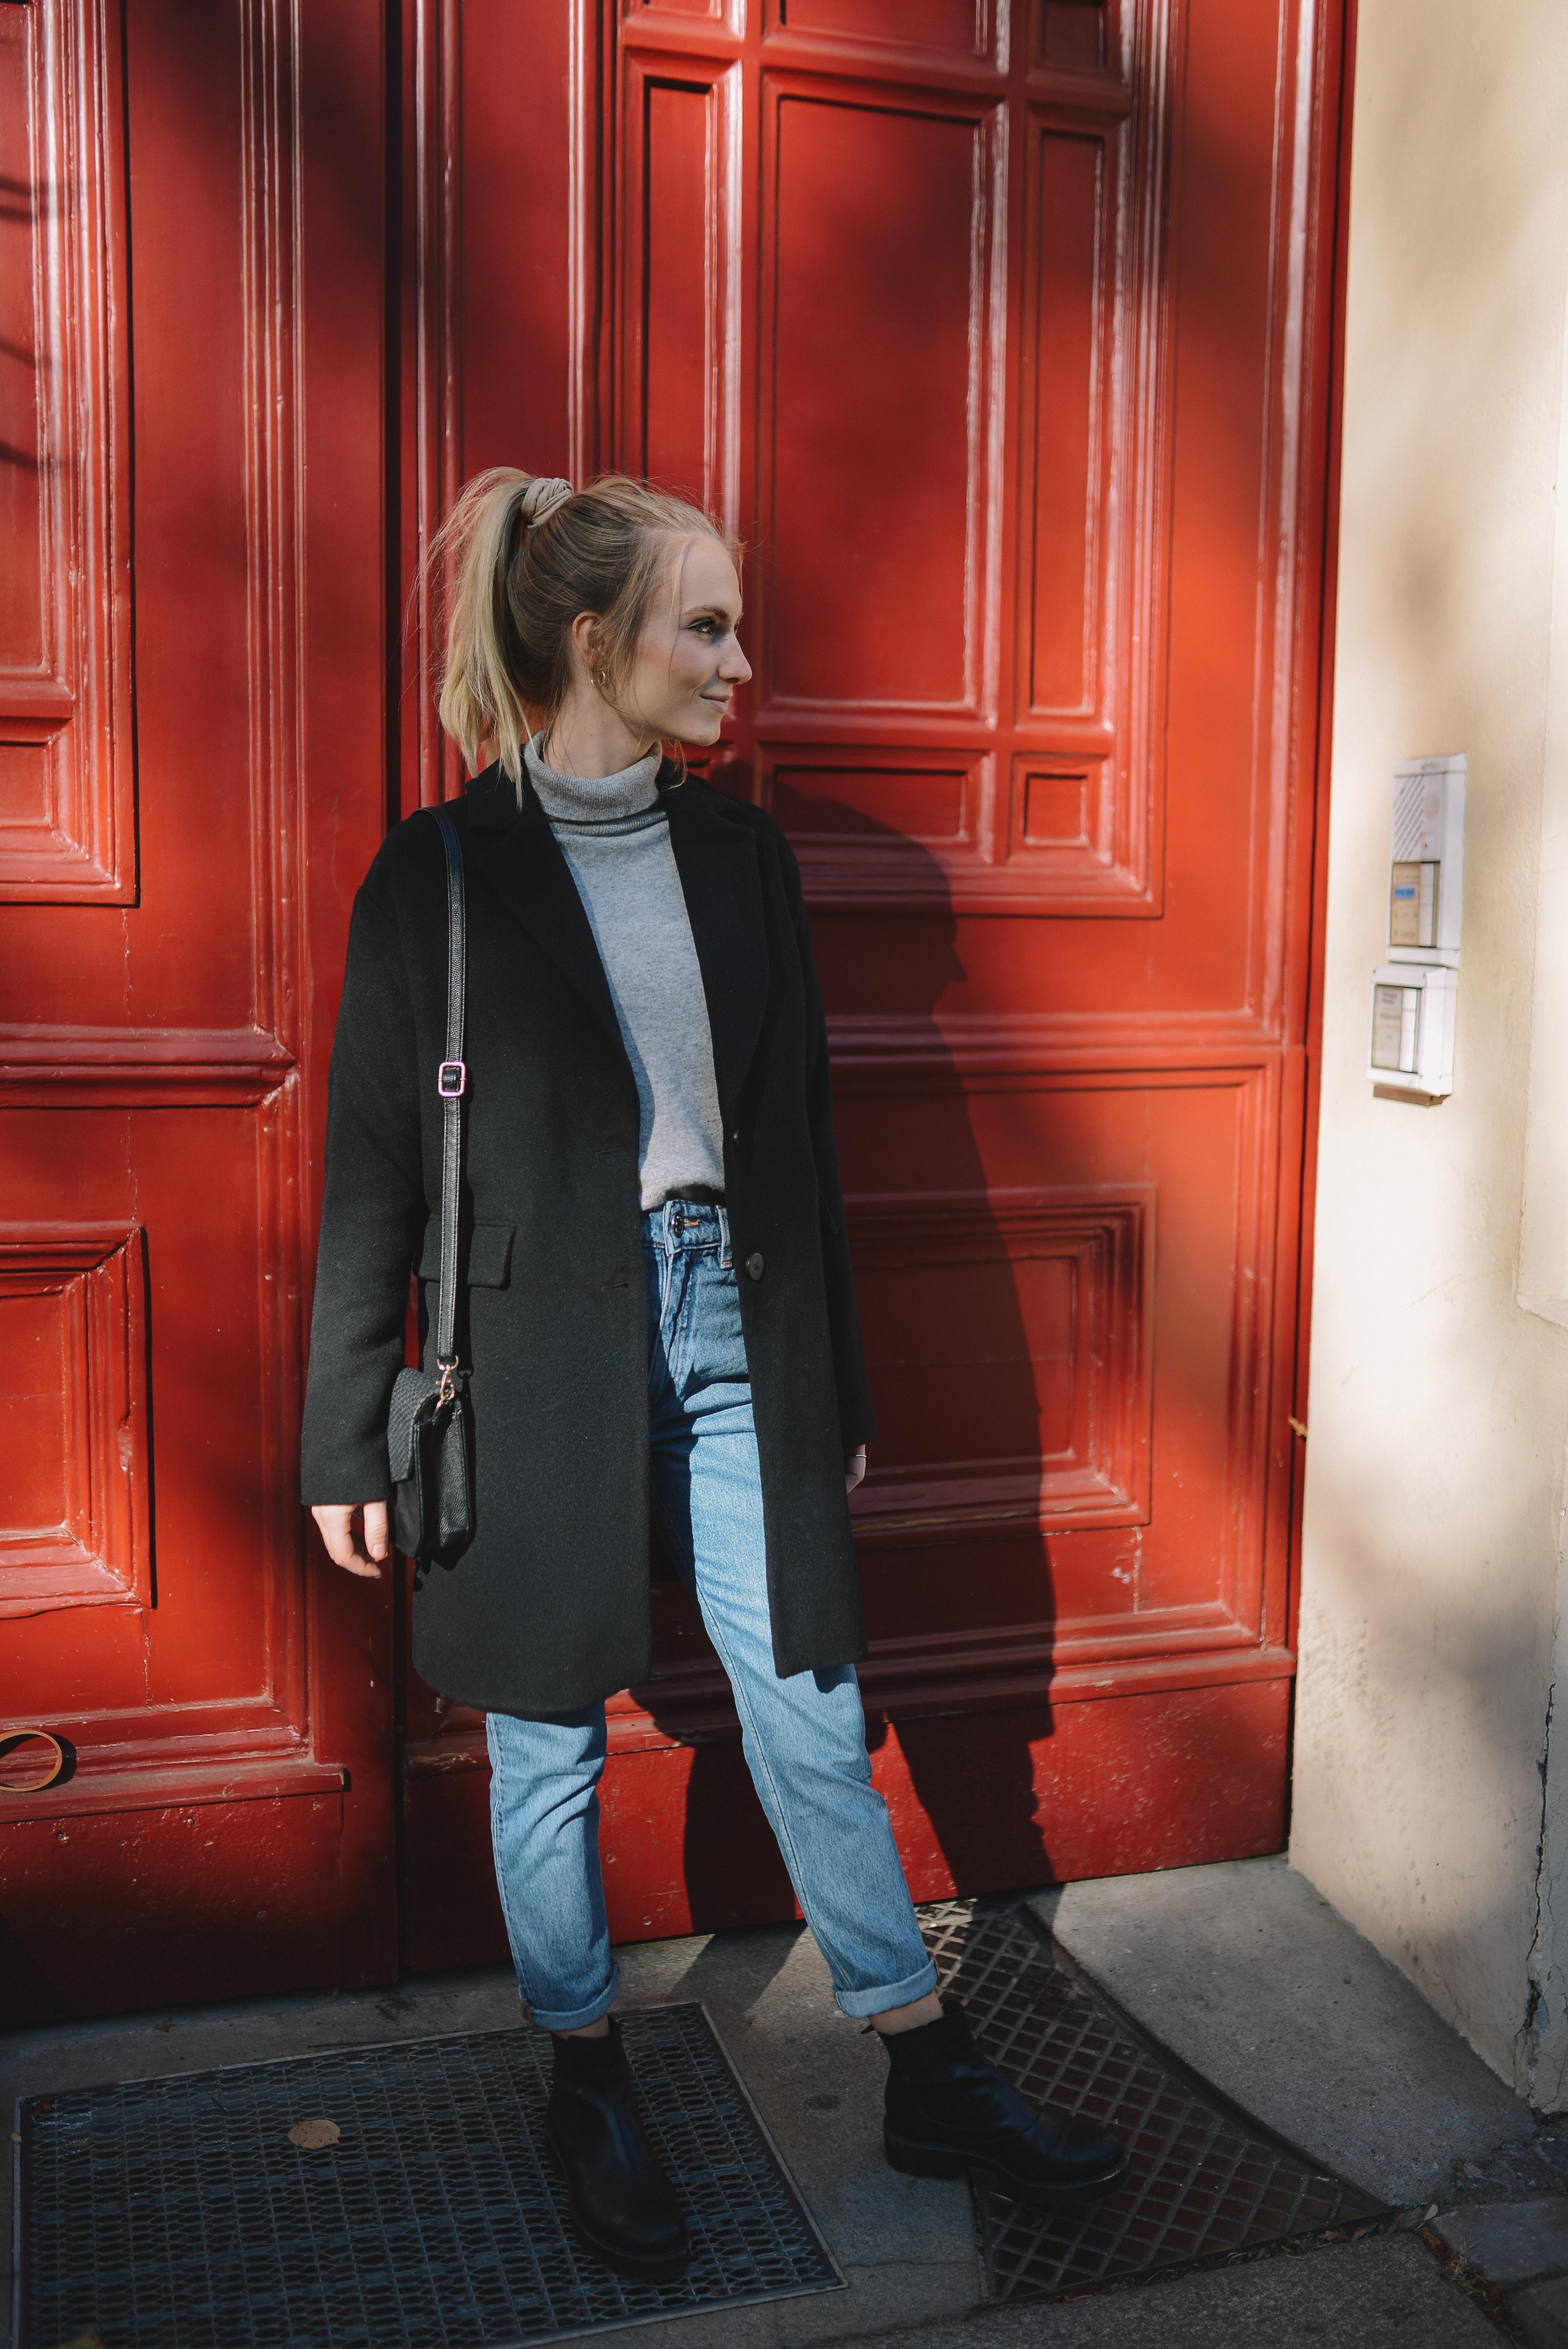 Herbsttage #ootd #fashioncrush #fashion #herbst